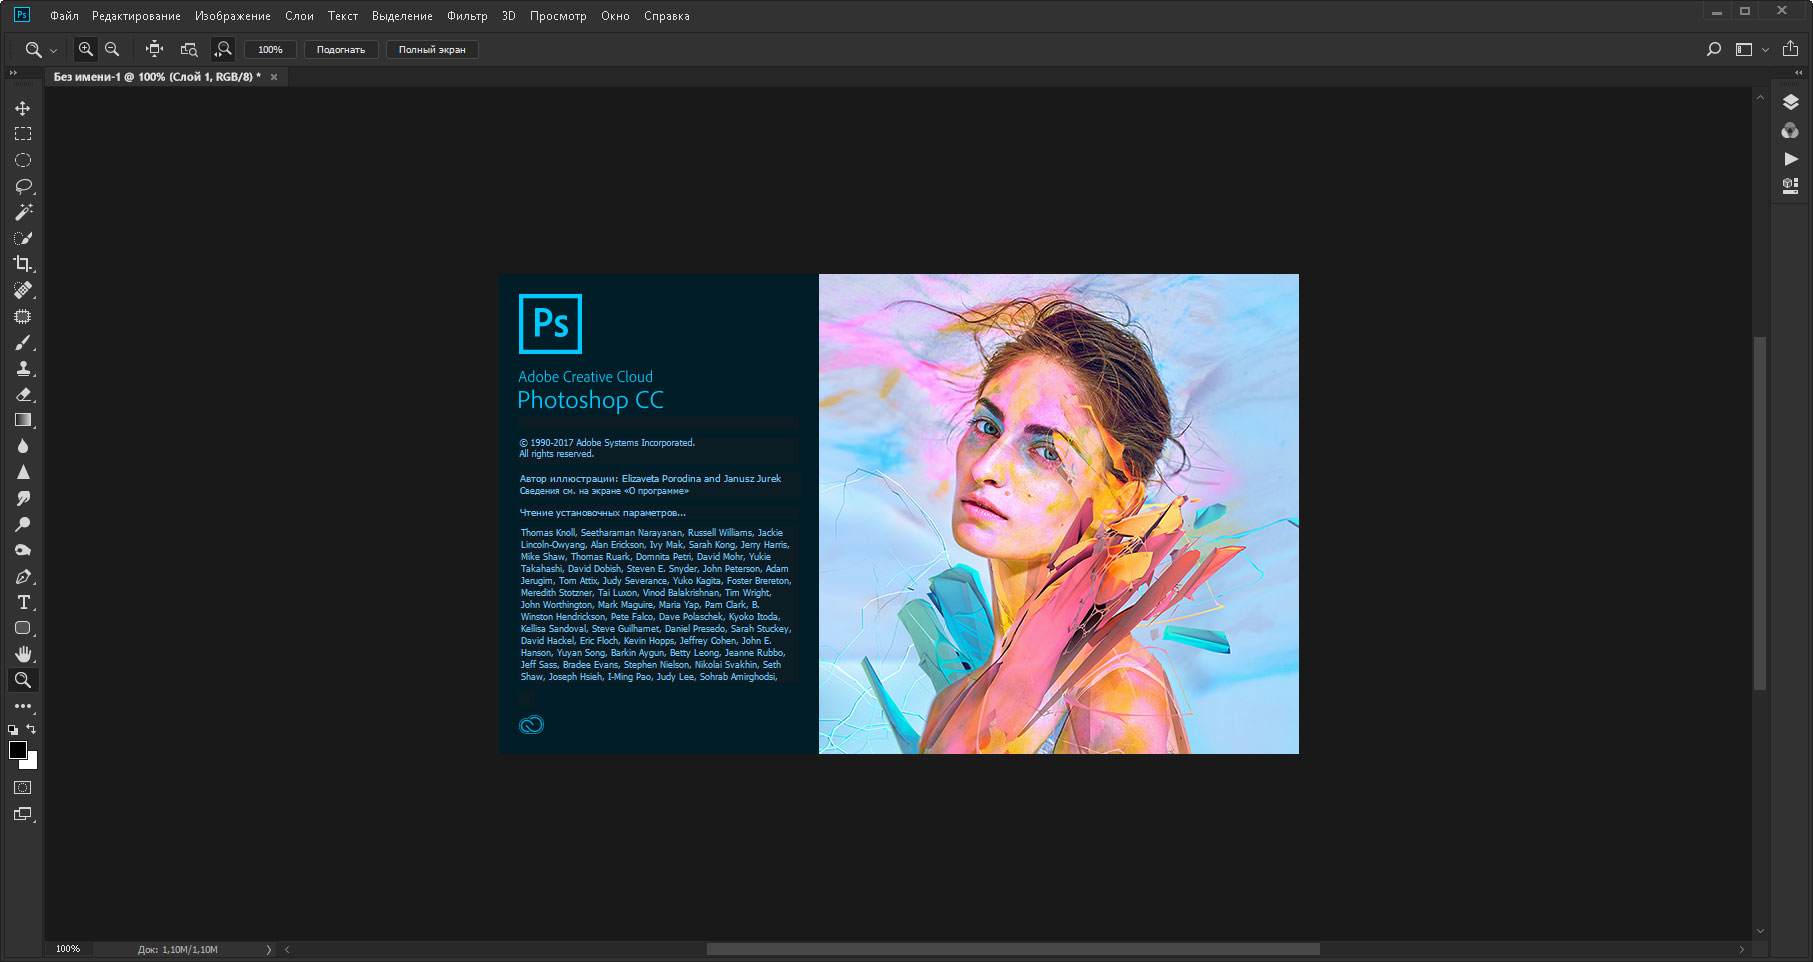 Adobe Photoshop CC 2018 [19.0.0.24821] + Actions [x64] (2017) PC | Portable by XpucT